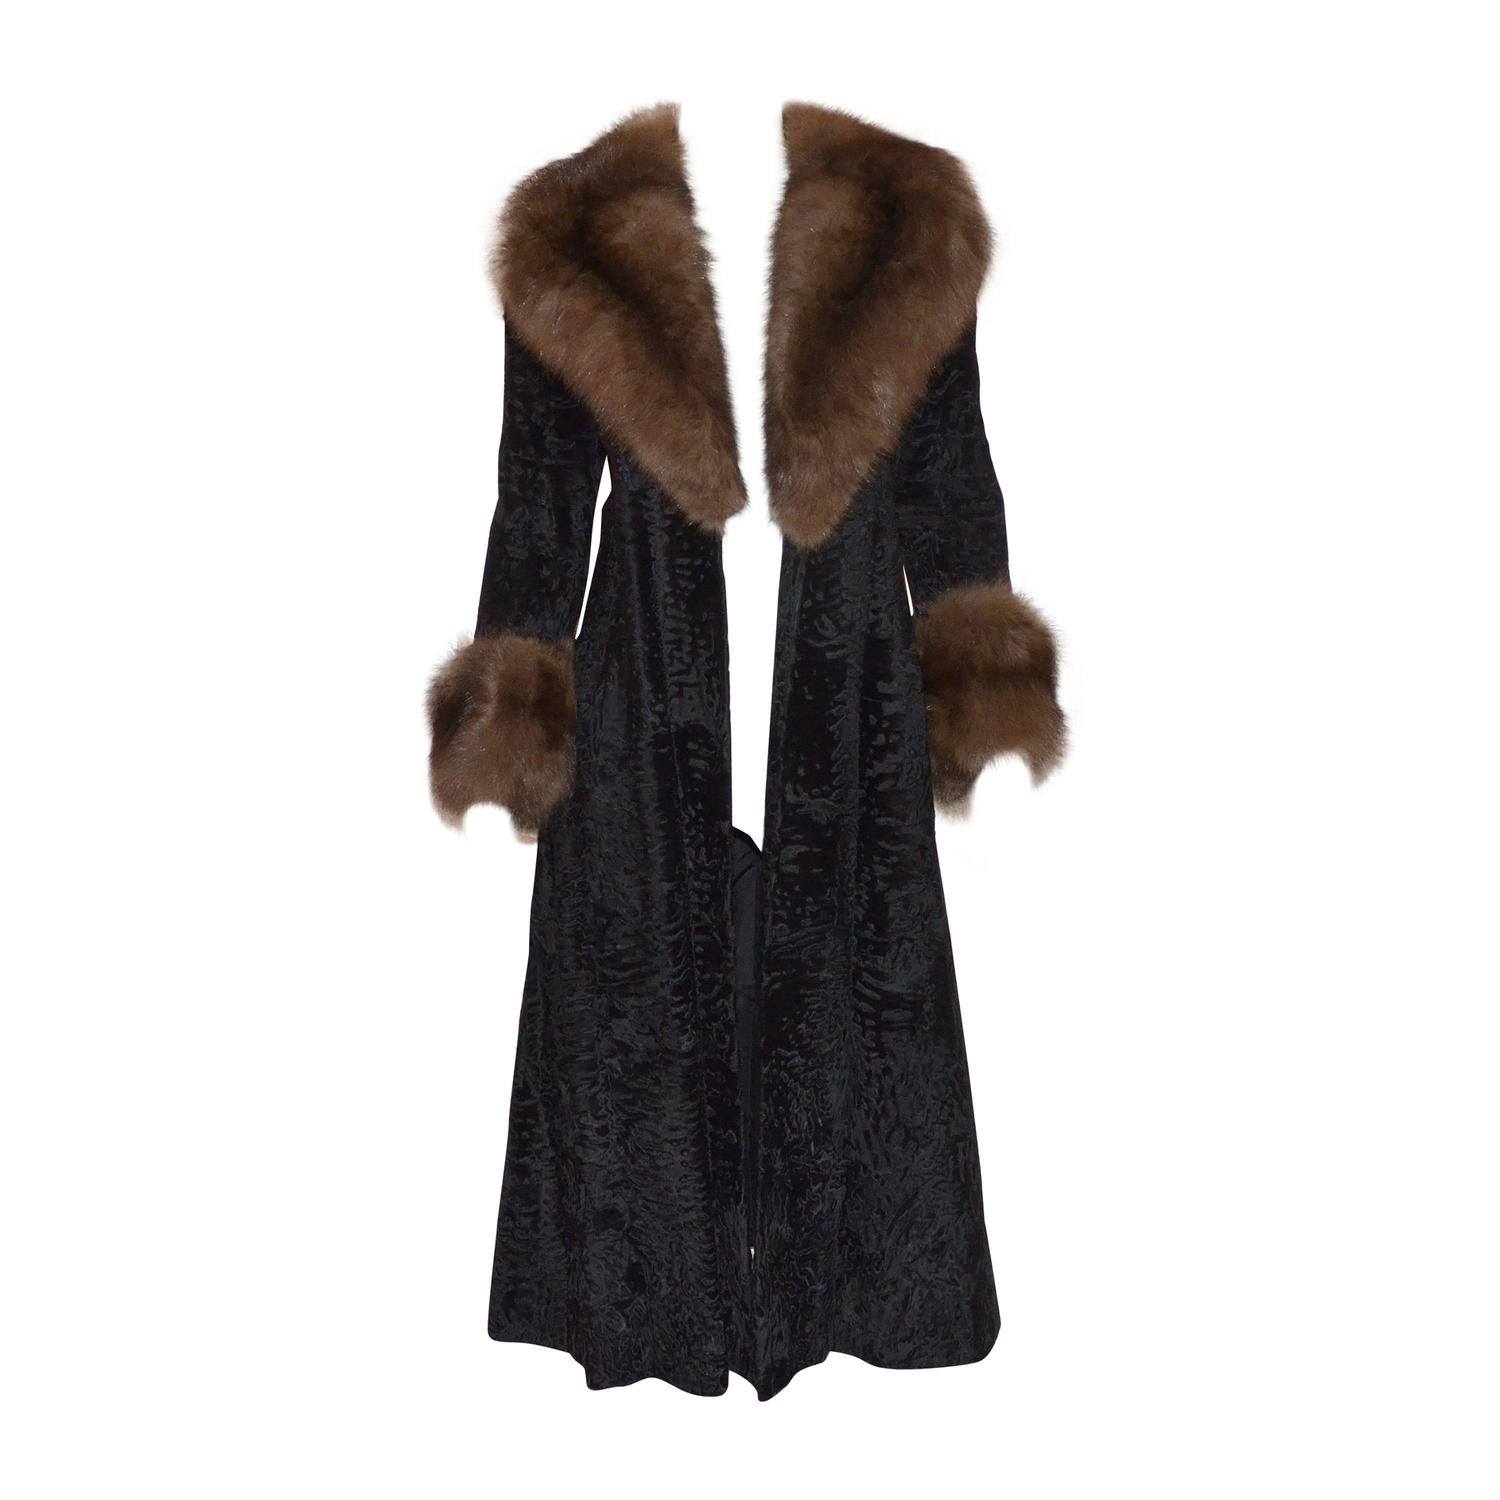 Foxy Couture Coats and Outerwear - Carmel-By-The-Sea CA 93921